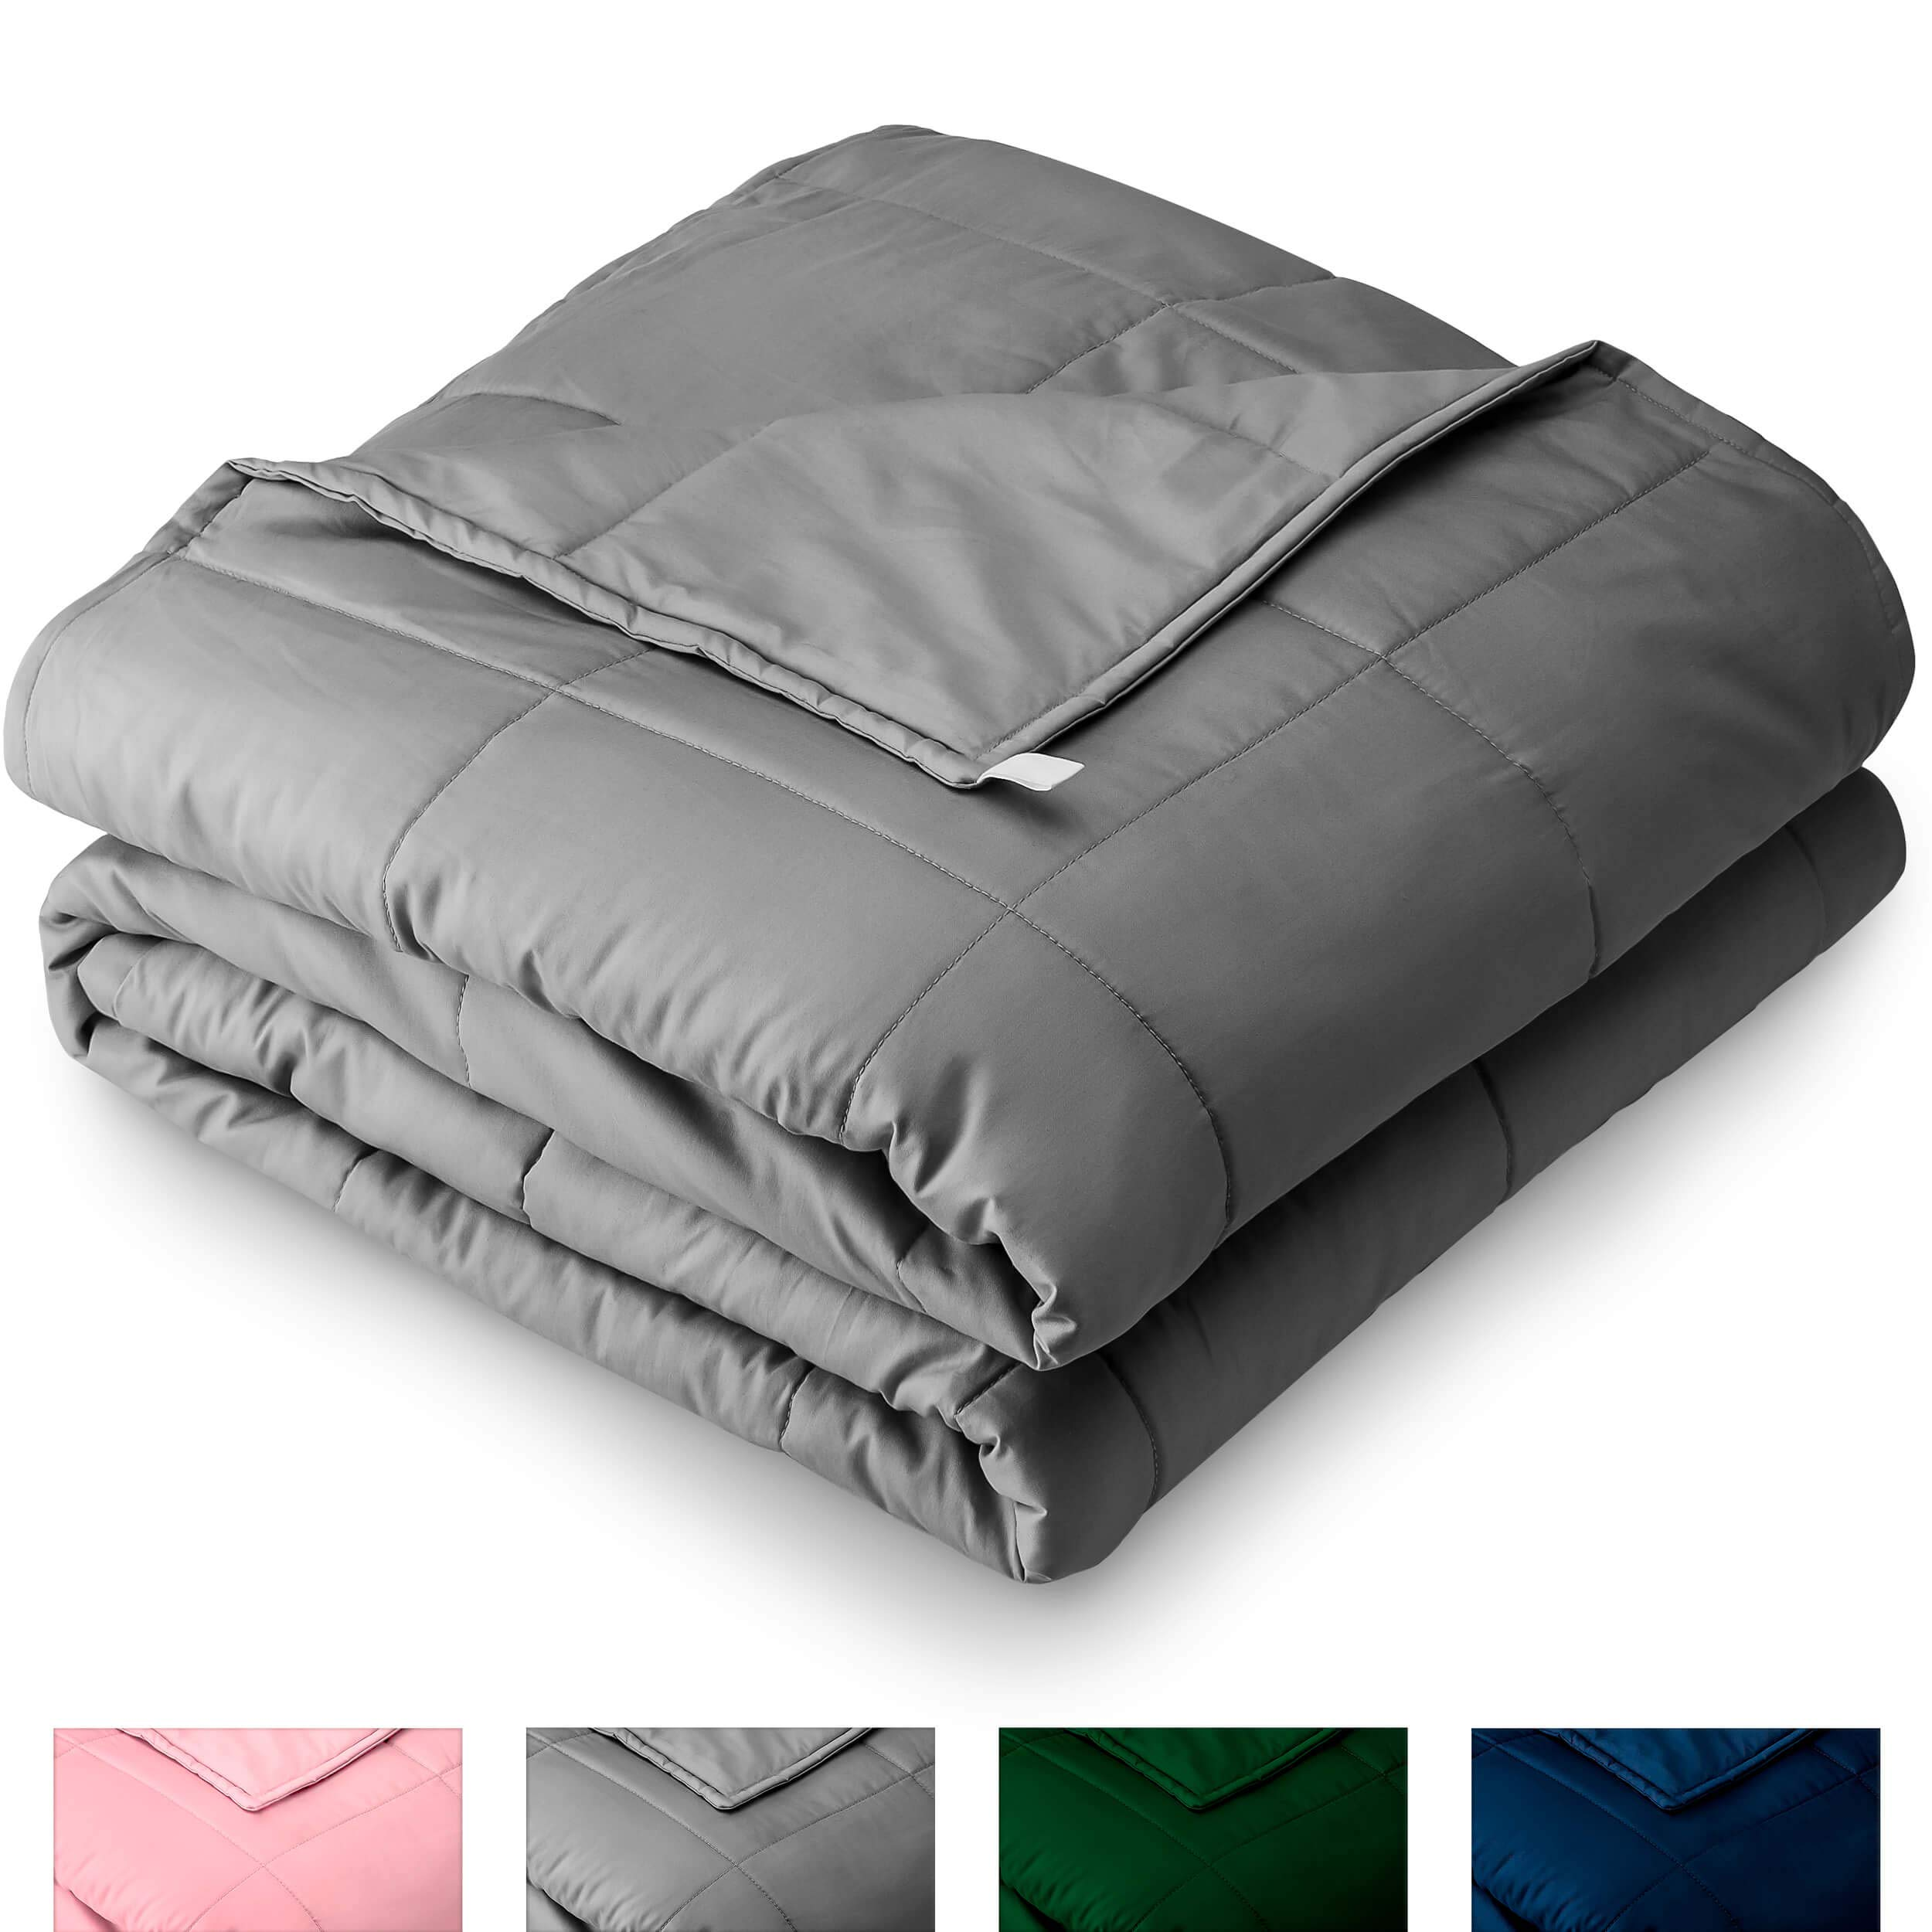 Bare Home Weighted Blanket for Adults 25lb (80'' x 87'') - Oversize - All-Natural 100% Cotton - Premium Heavy Blanket Nontoxic Glass Beads (Grey, 80''x87'') by Bare Home